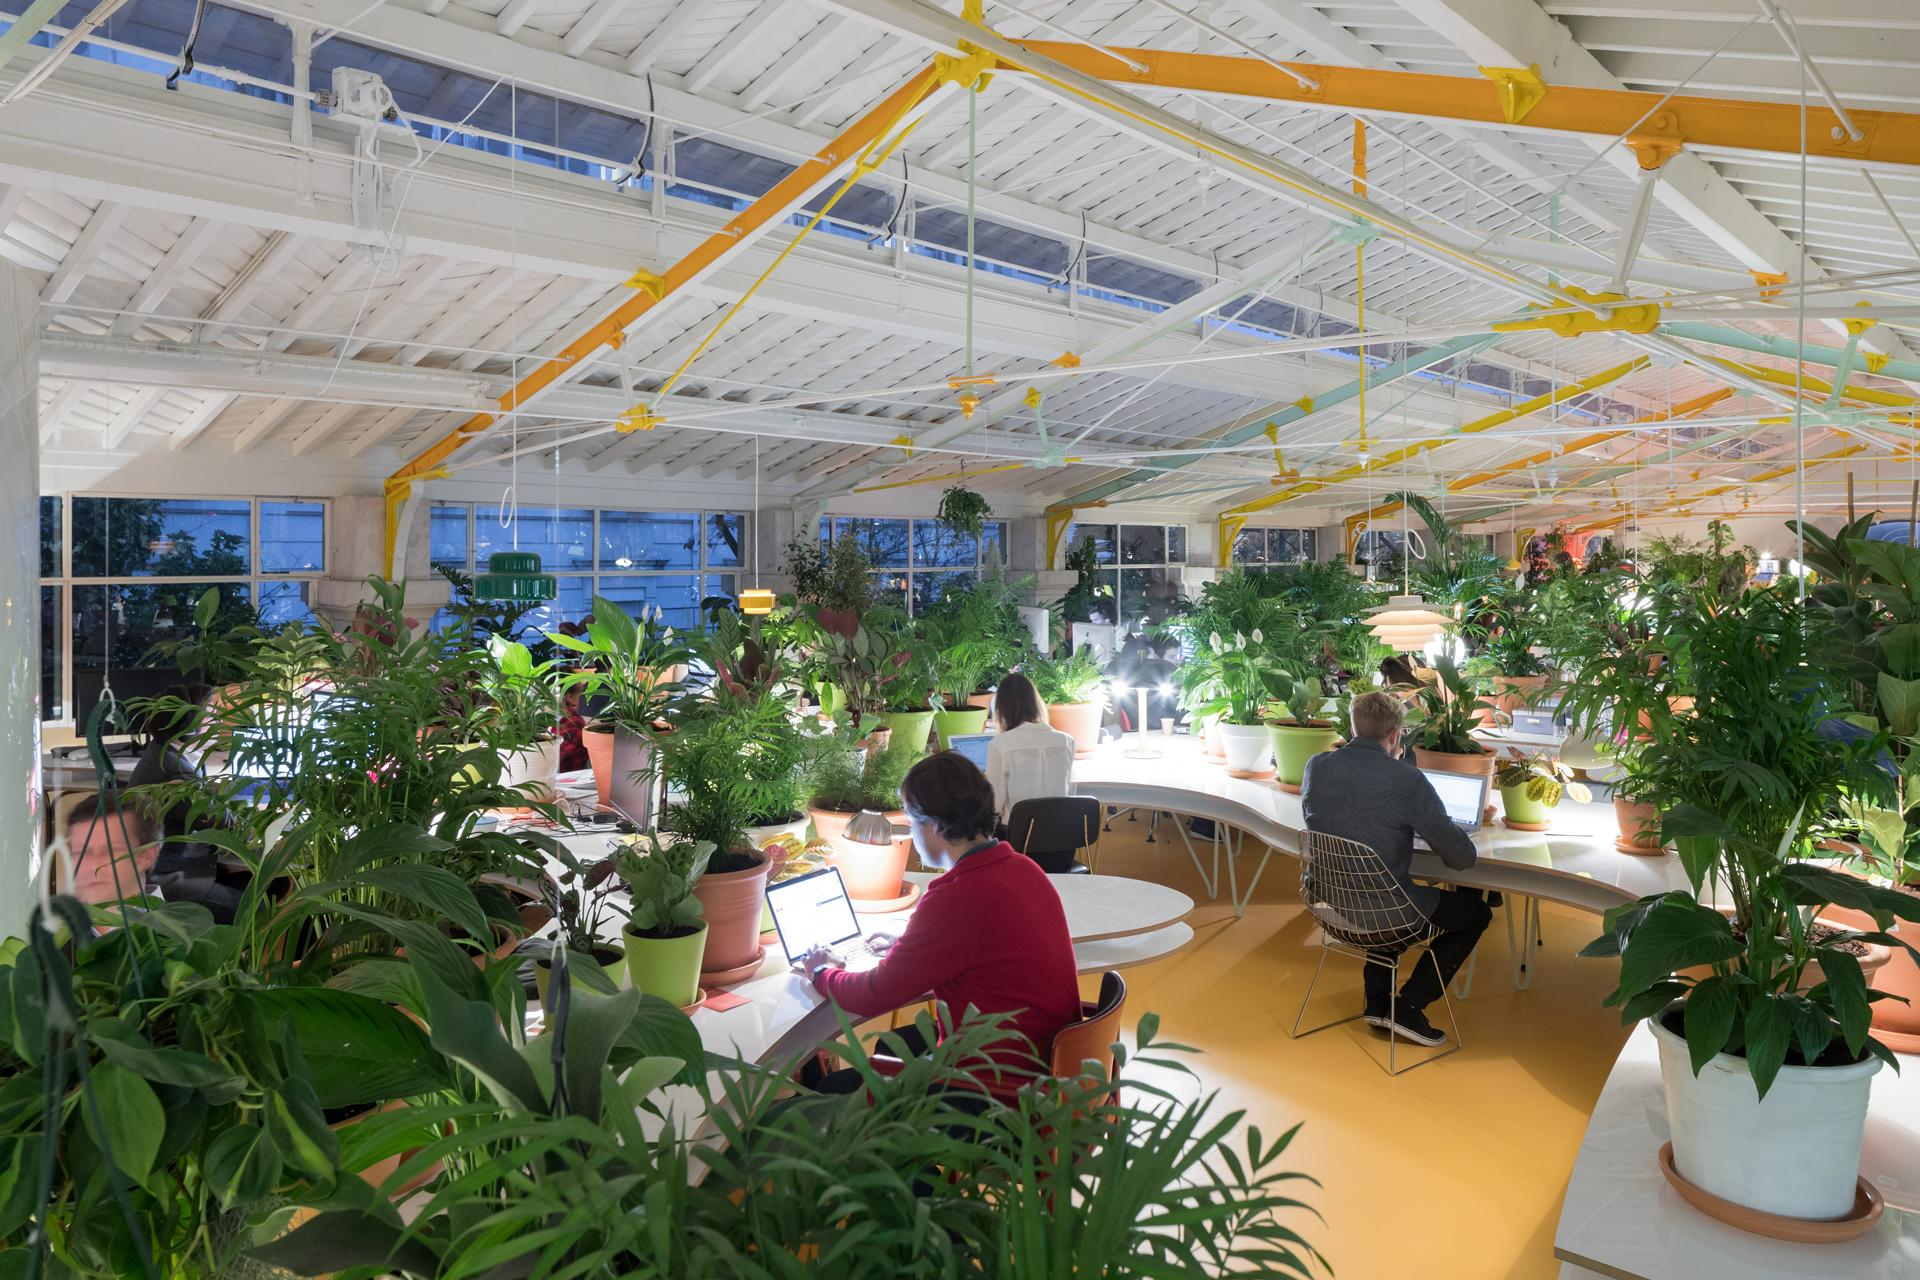 FRAME | Grow green in the vibrant co-working space designed by SelgasCano